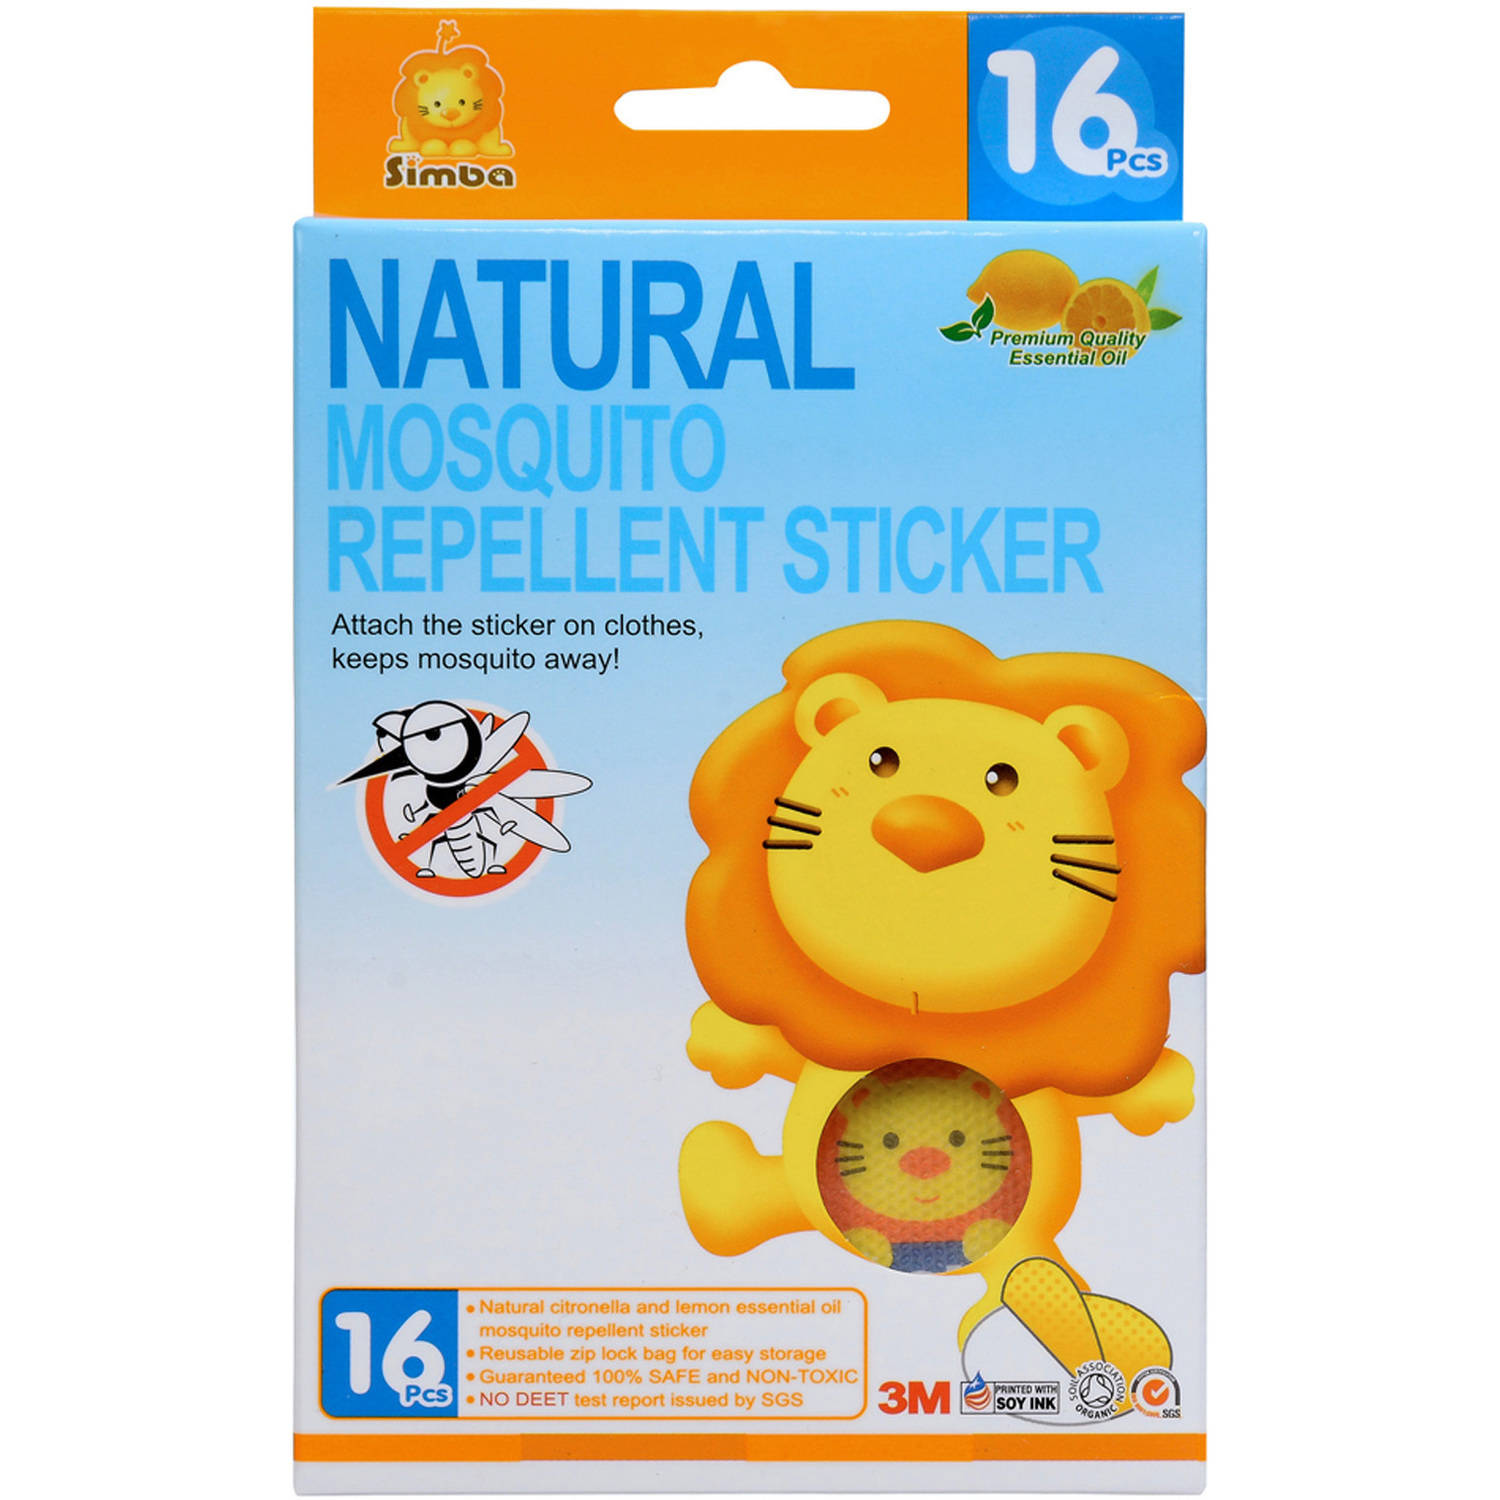 Simba Mosquito Repellent Stickers, 16 pcs